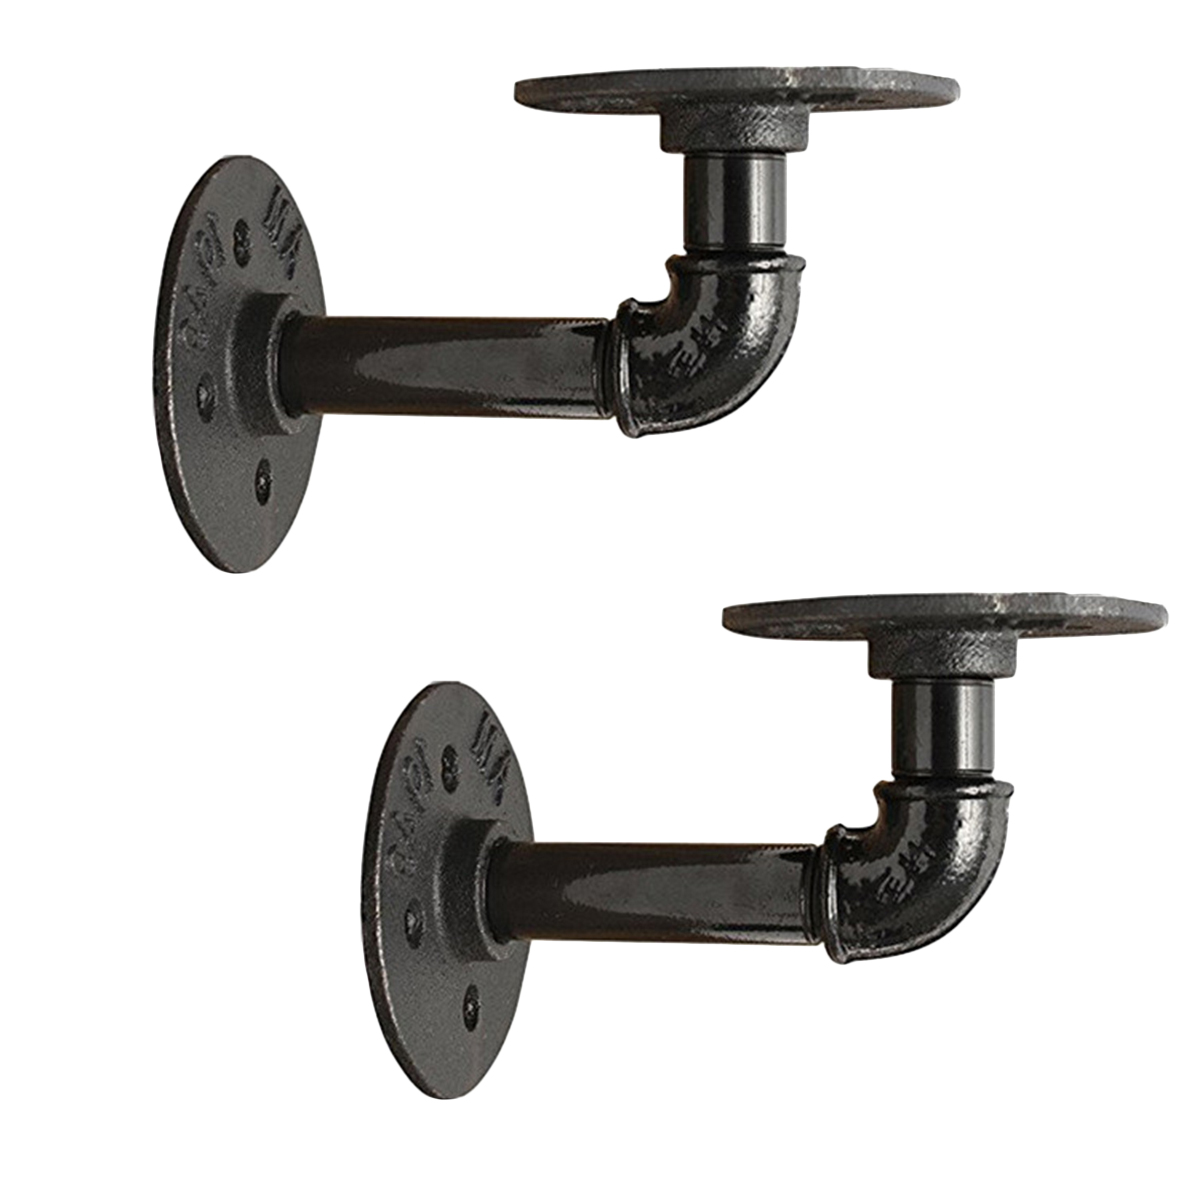 2019 Pipe Shelf Bracket Wall Mounted Wall Shelf Vintage Style Iron Pipe Bracket Support Rack For Restaurant Ktv Bar Home From Hymen 50 28